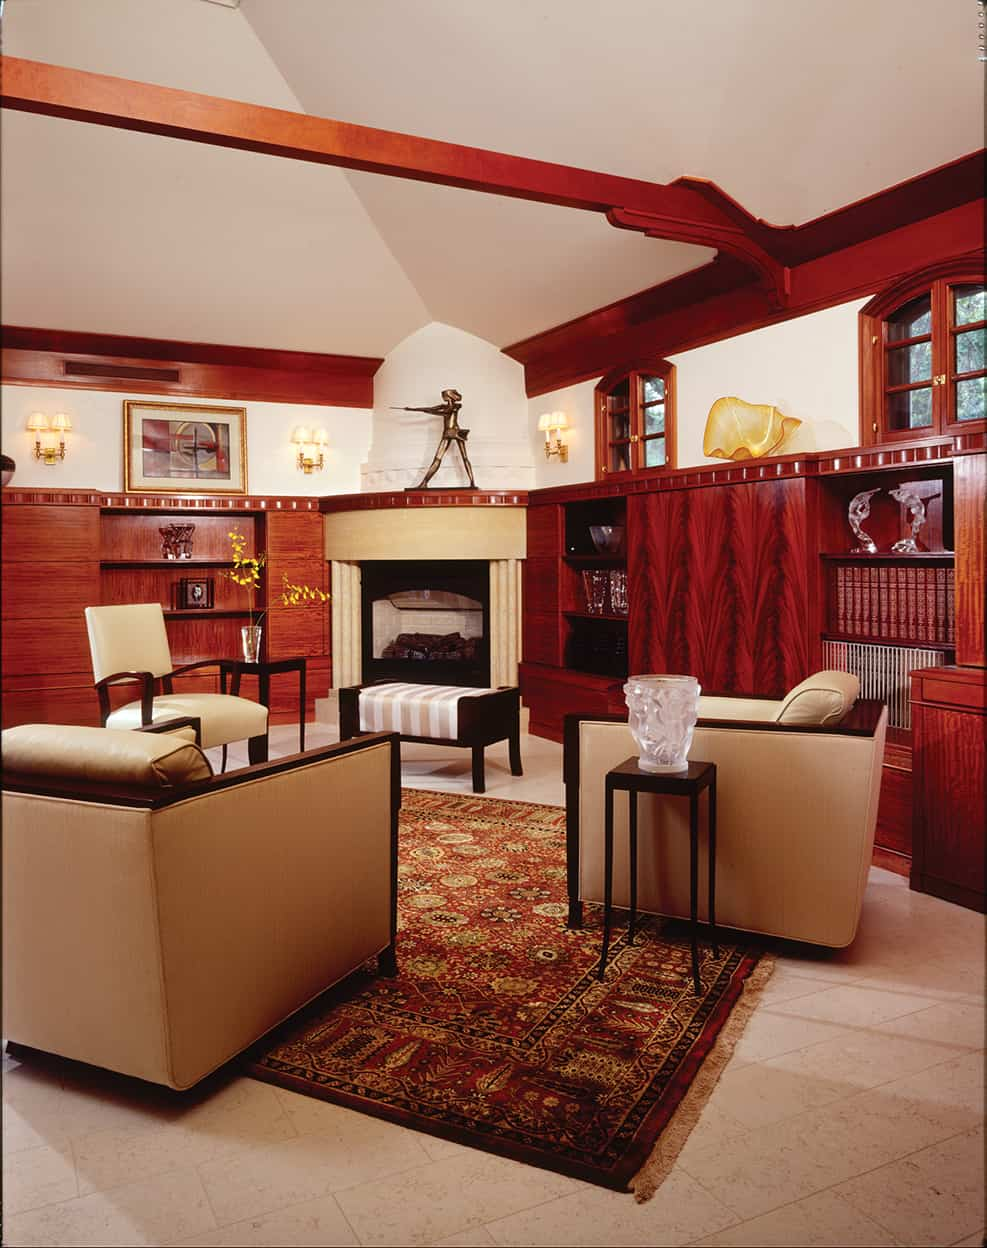 The family room has white walls and a vaulted ceiling with elegantly carved beams. The rounded corner fireplace is of cream stone, and the white stone floor (which continues into the kitchen) is softened by an oriental rug in browns, reds, and golds.